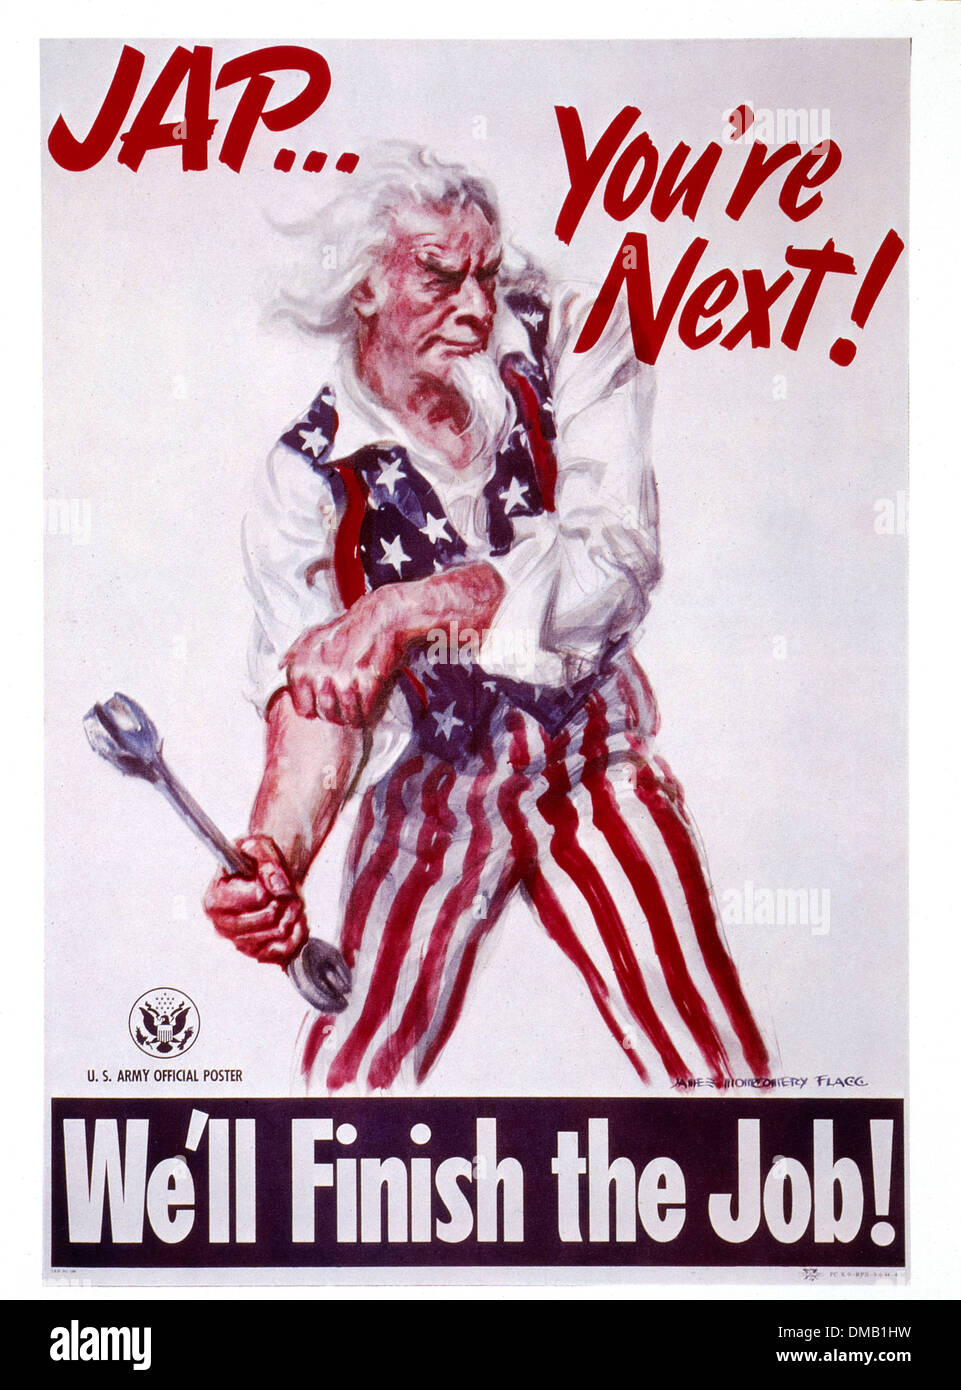 World War II Military Poster, 'Jap, You're Next!', by James Montgomery Flagg, USA, 1942 - Stock Image